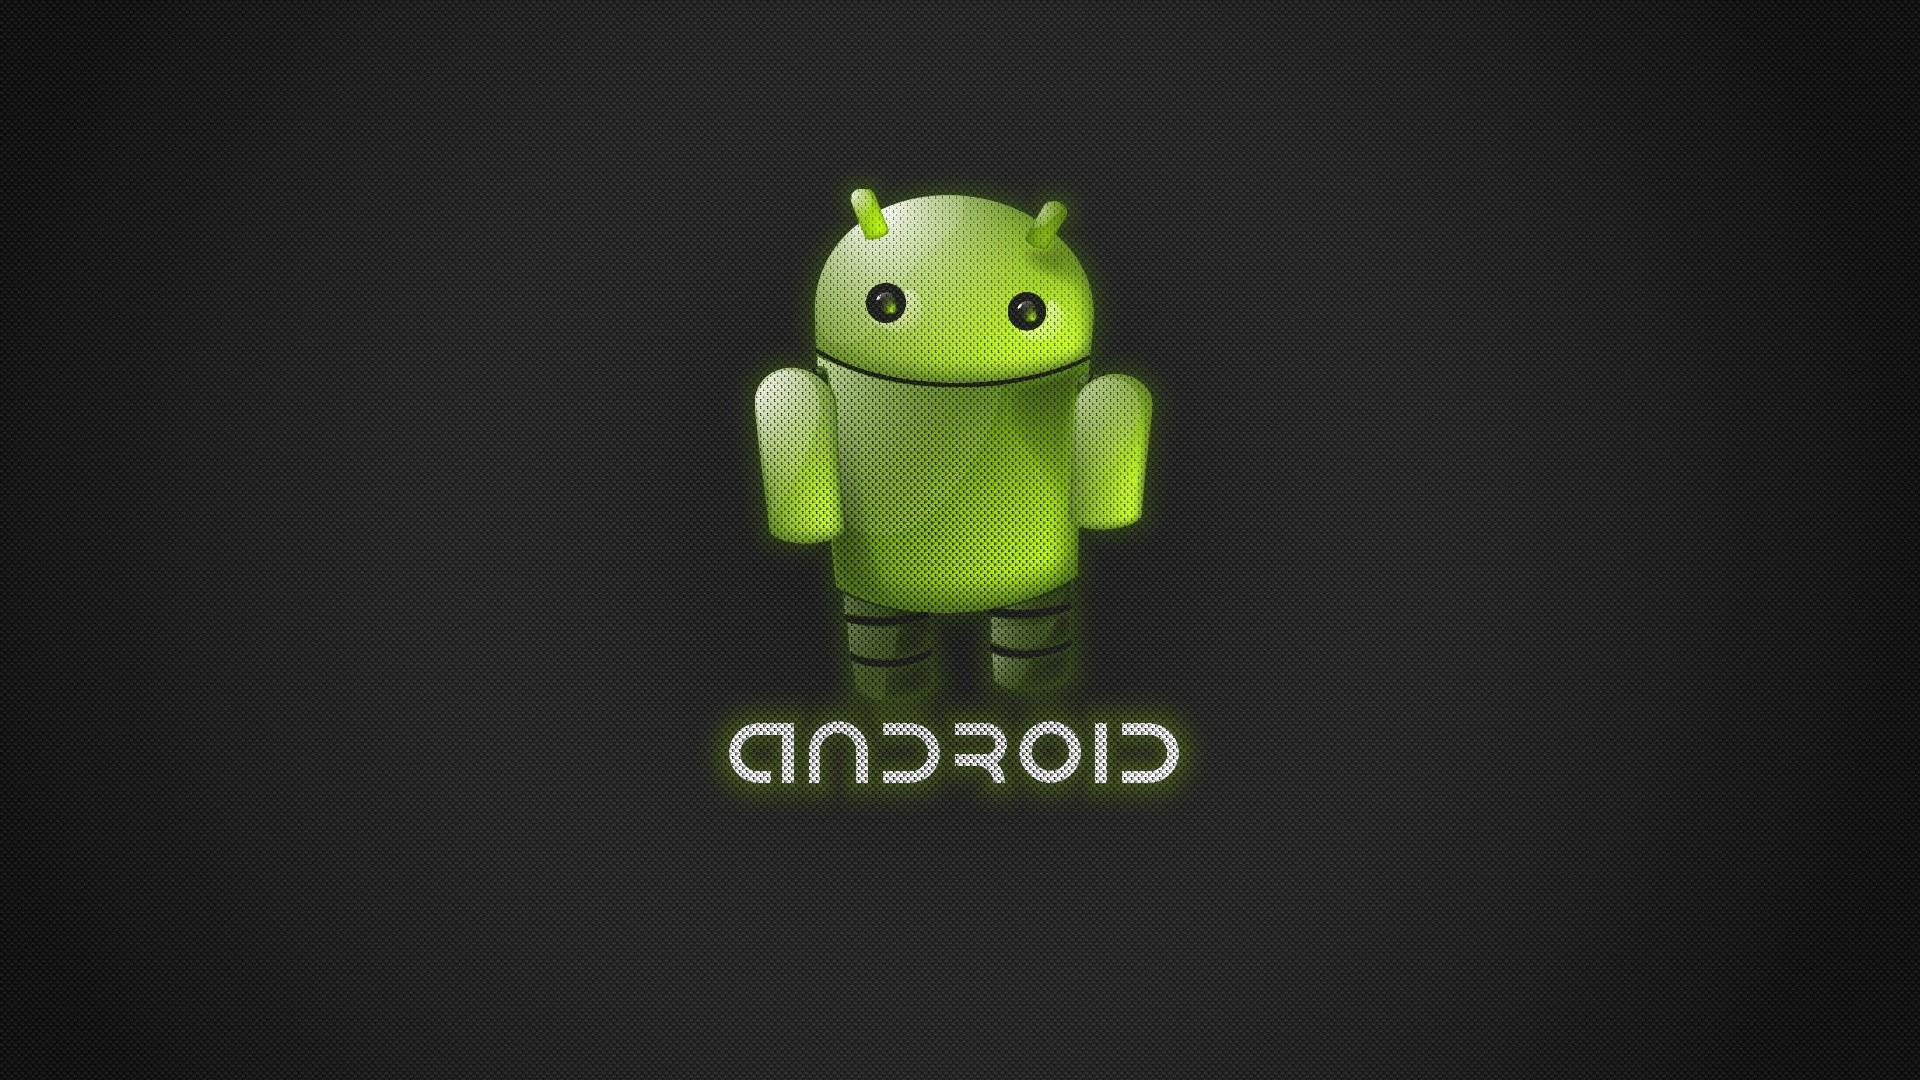 Animated Wallpaper for Android (62+ images)